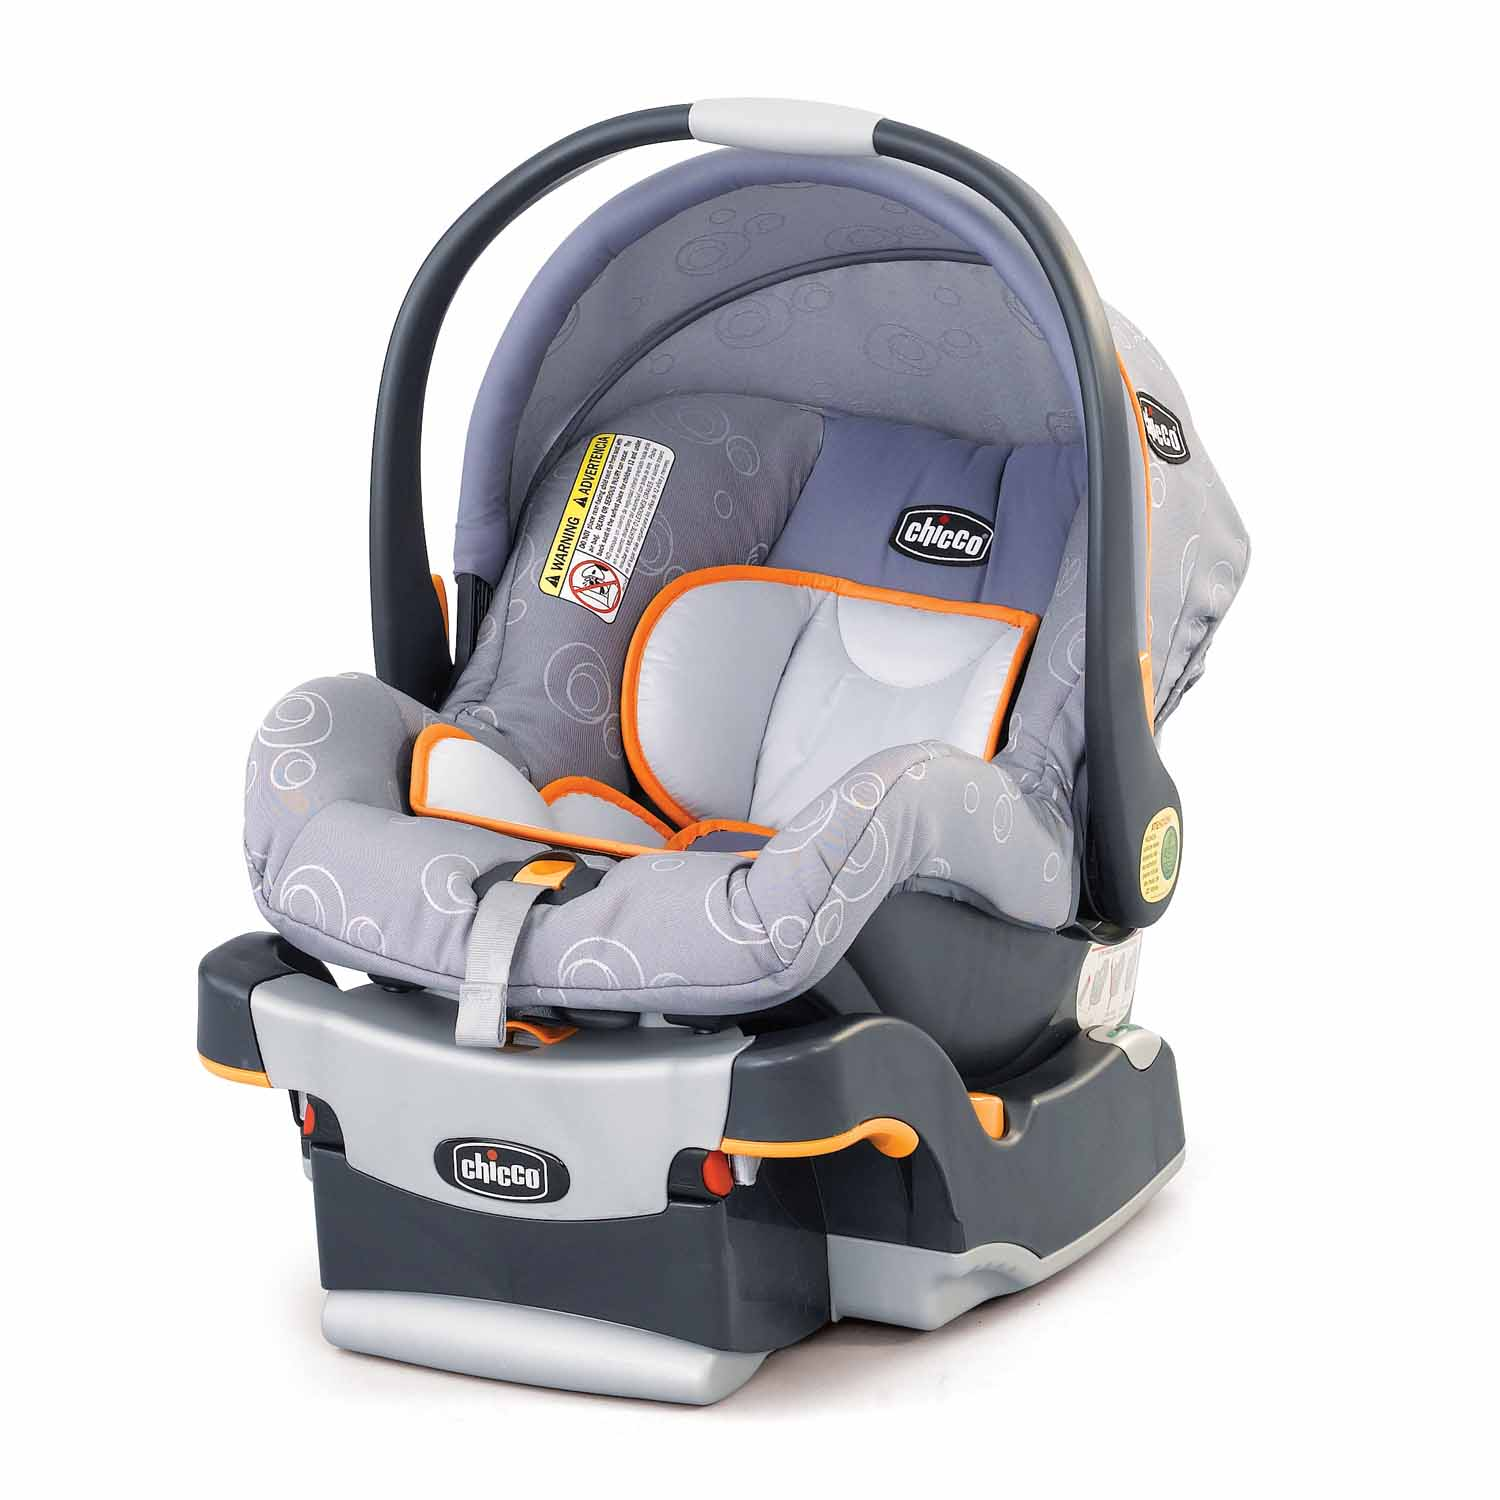 Chicco Childrens Car Seat Travel Bag With Wheels